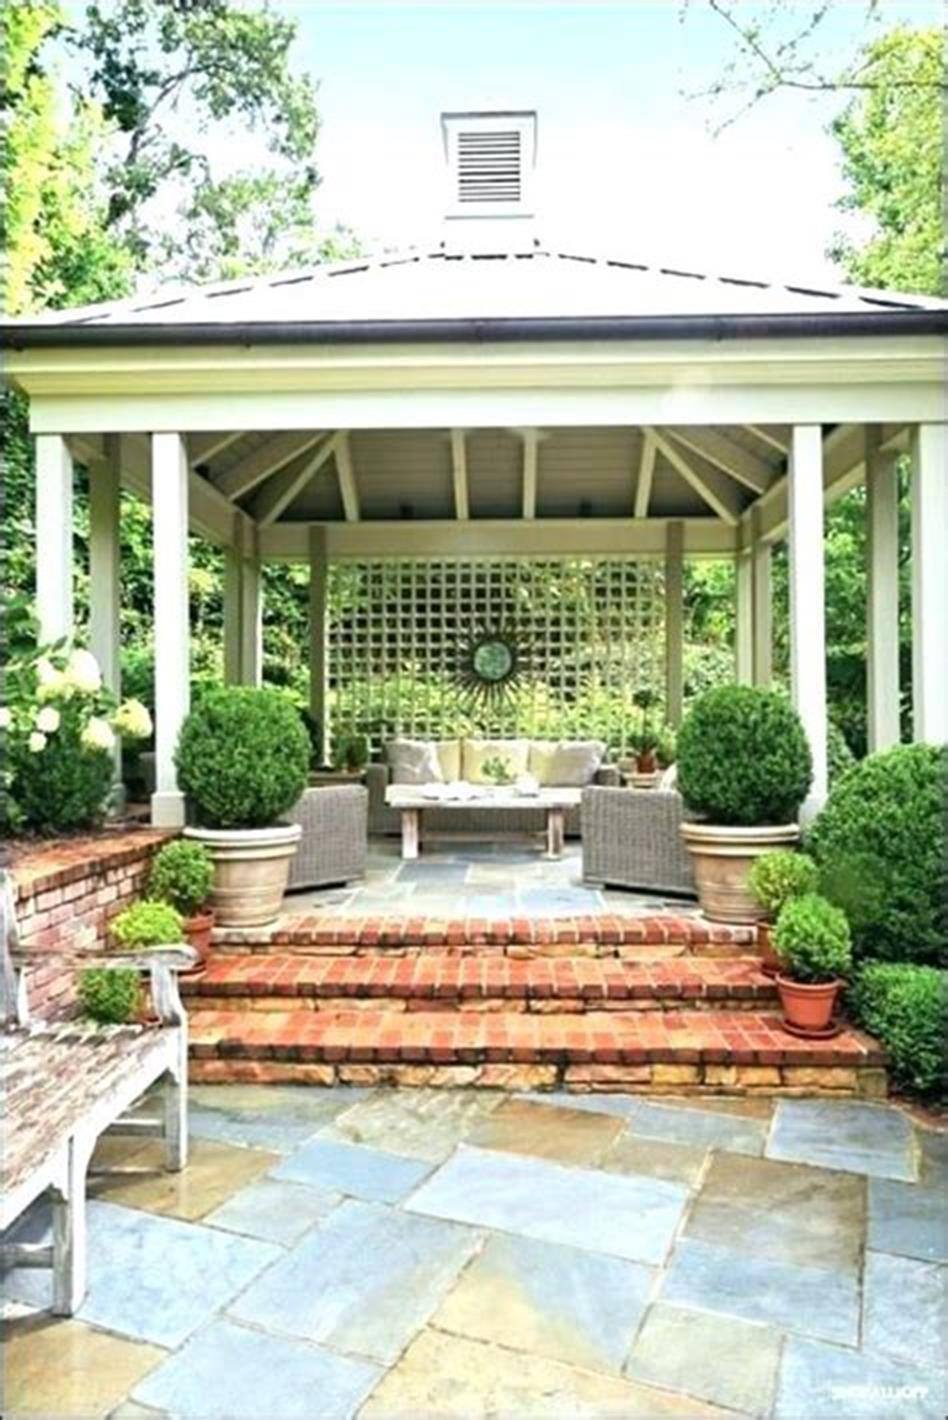 45 Perfect Rustic Porch Furniture Ideas for 2019 22